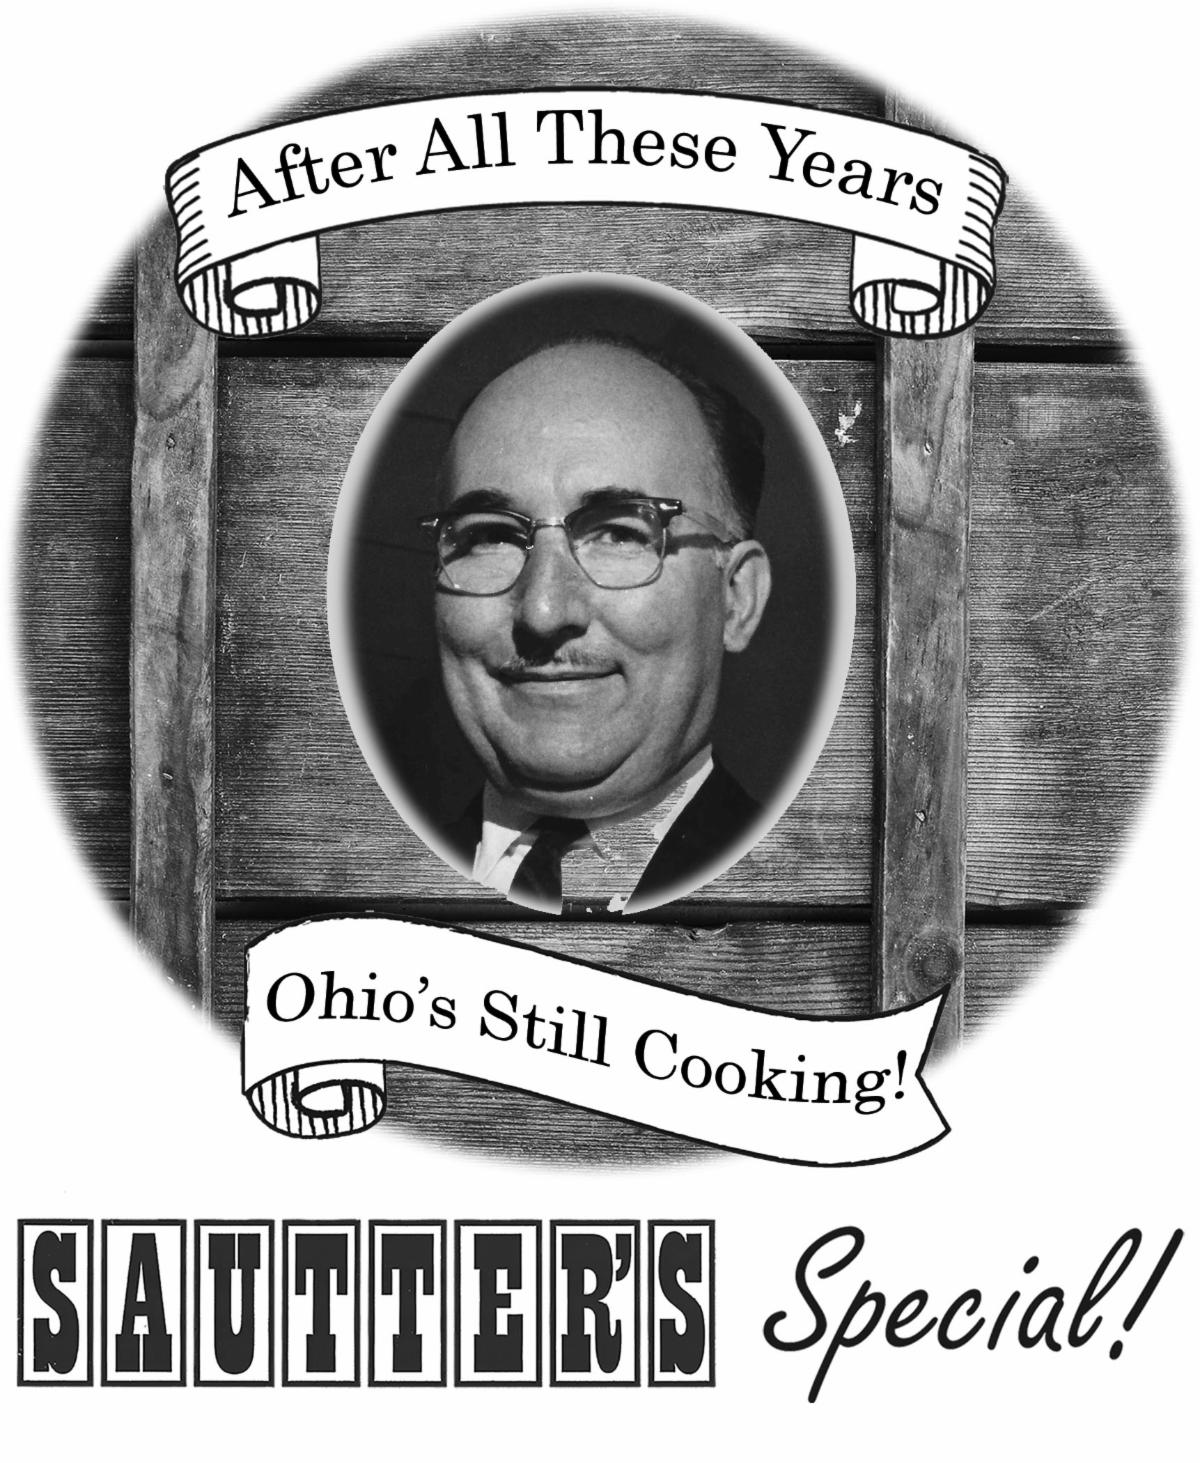 Bob Sautter After All These Years